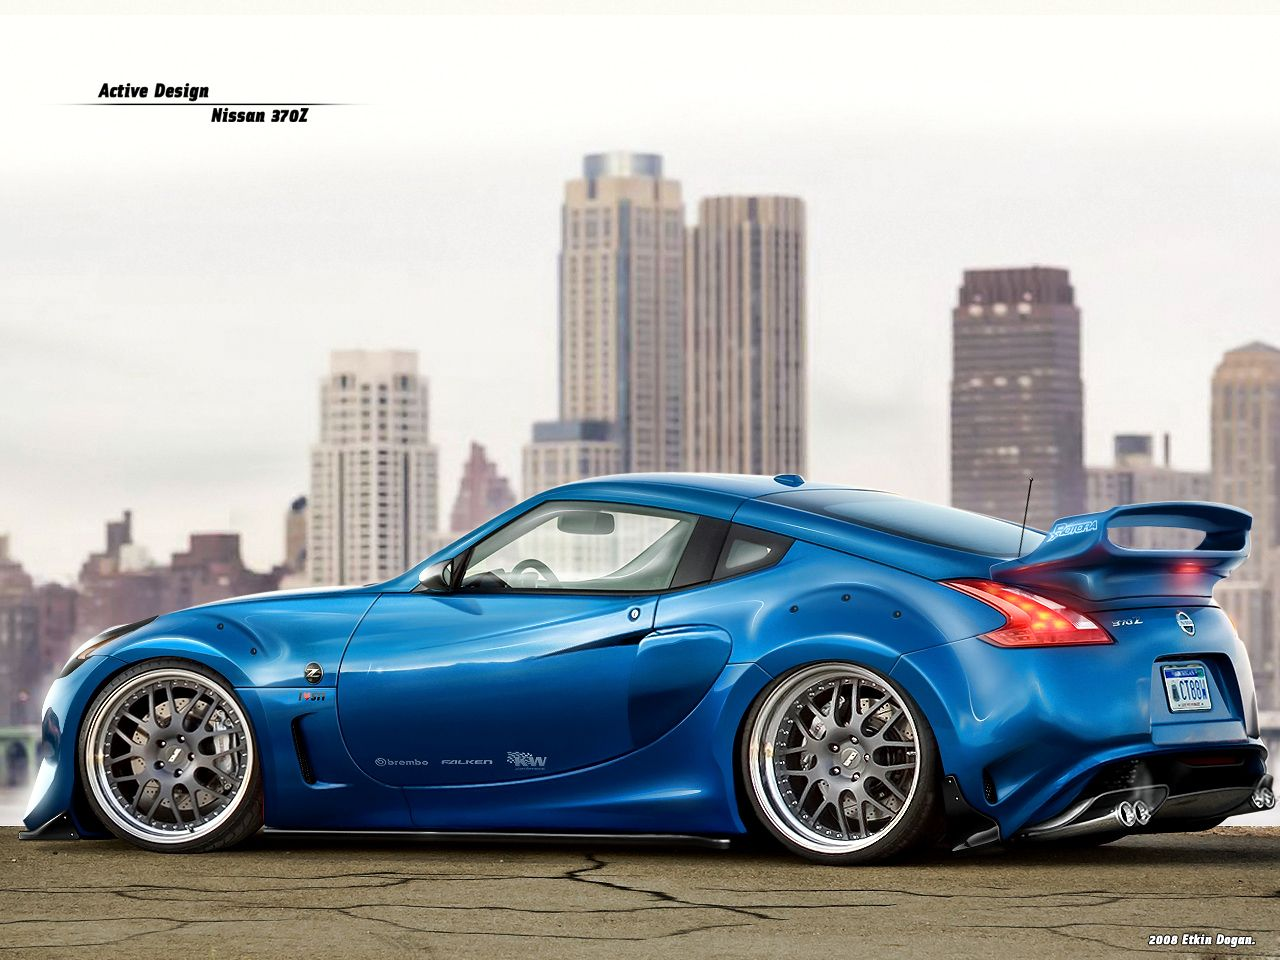 40 totally insane car graphics before and after nissan 370z nissan by active design on deviantart vanachro Choice Image